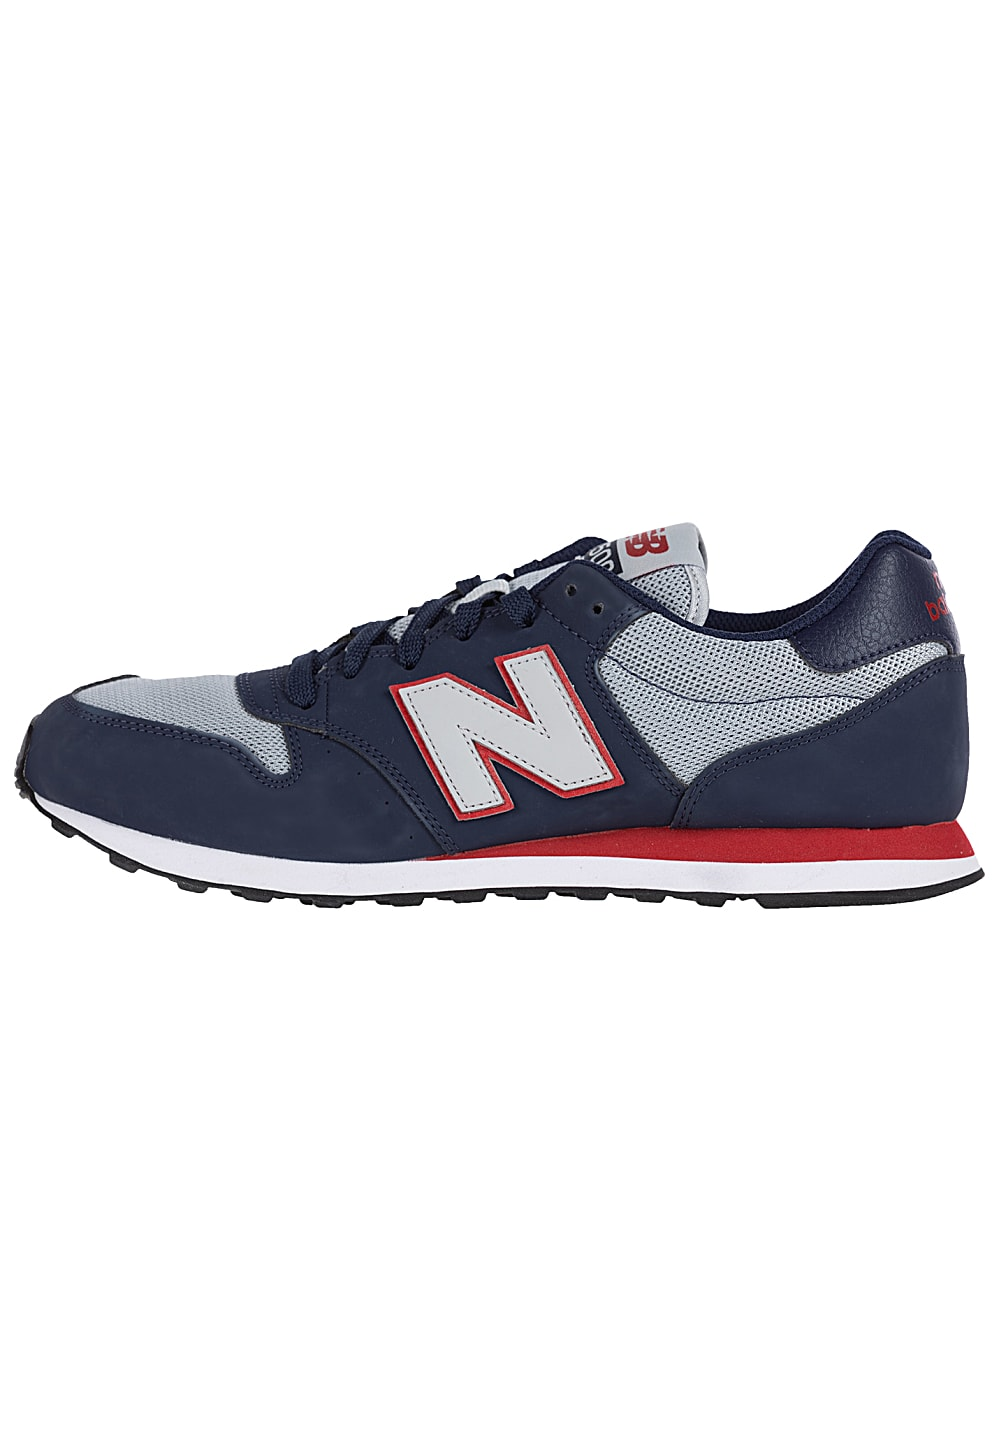 NEW BALANCE GM500 D Sneaker für Herren Blau Planet Sports